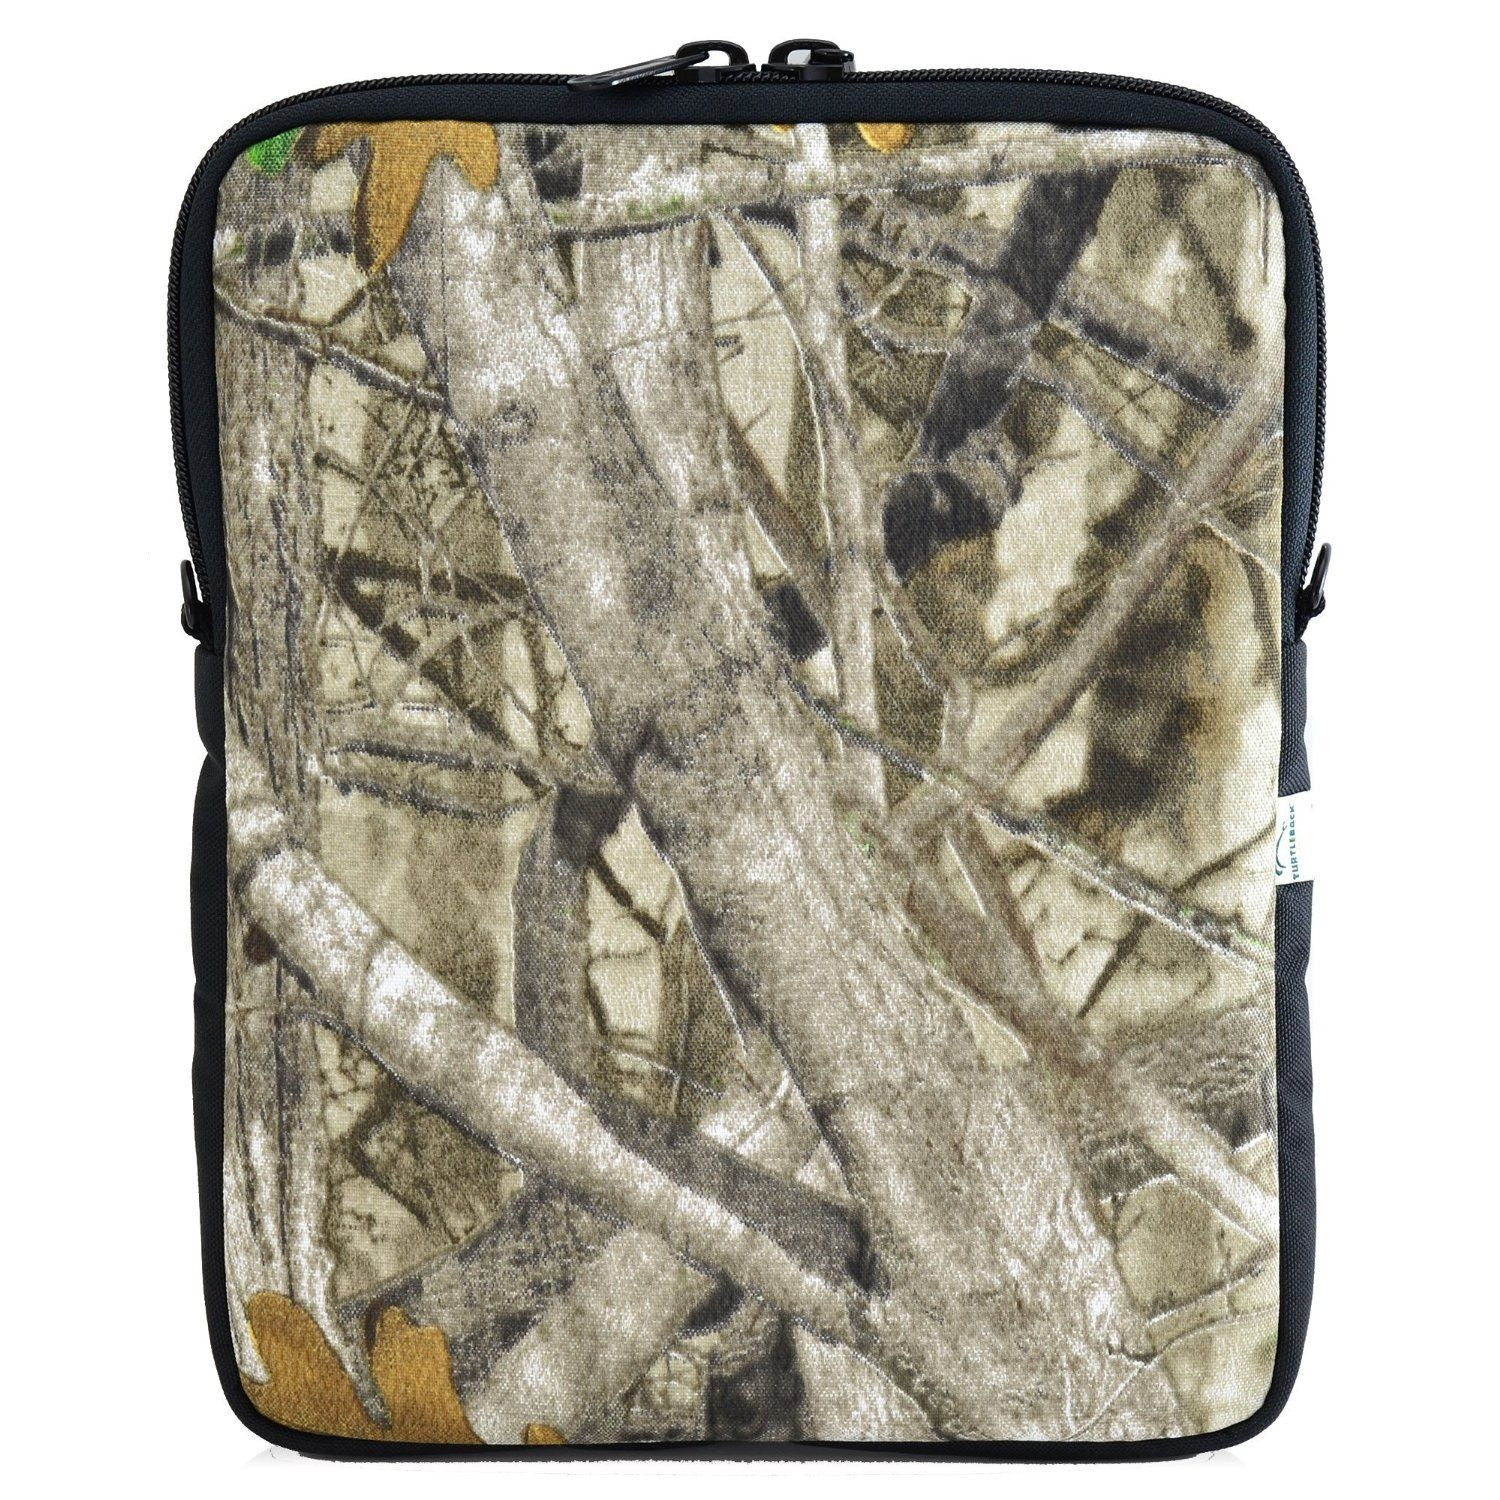 Carry on bag Made in USA and FREE SHIPPING